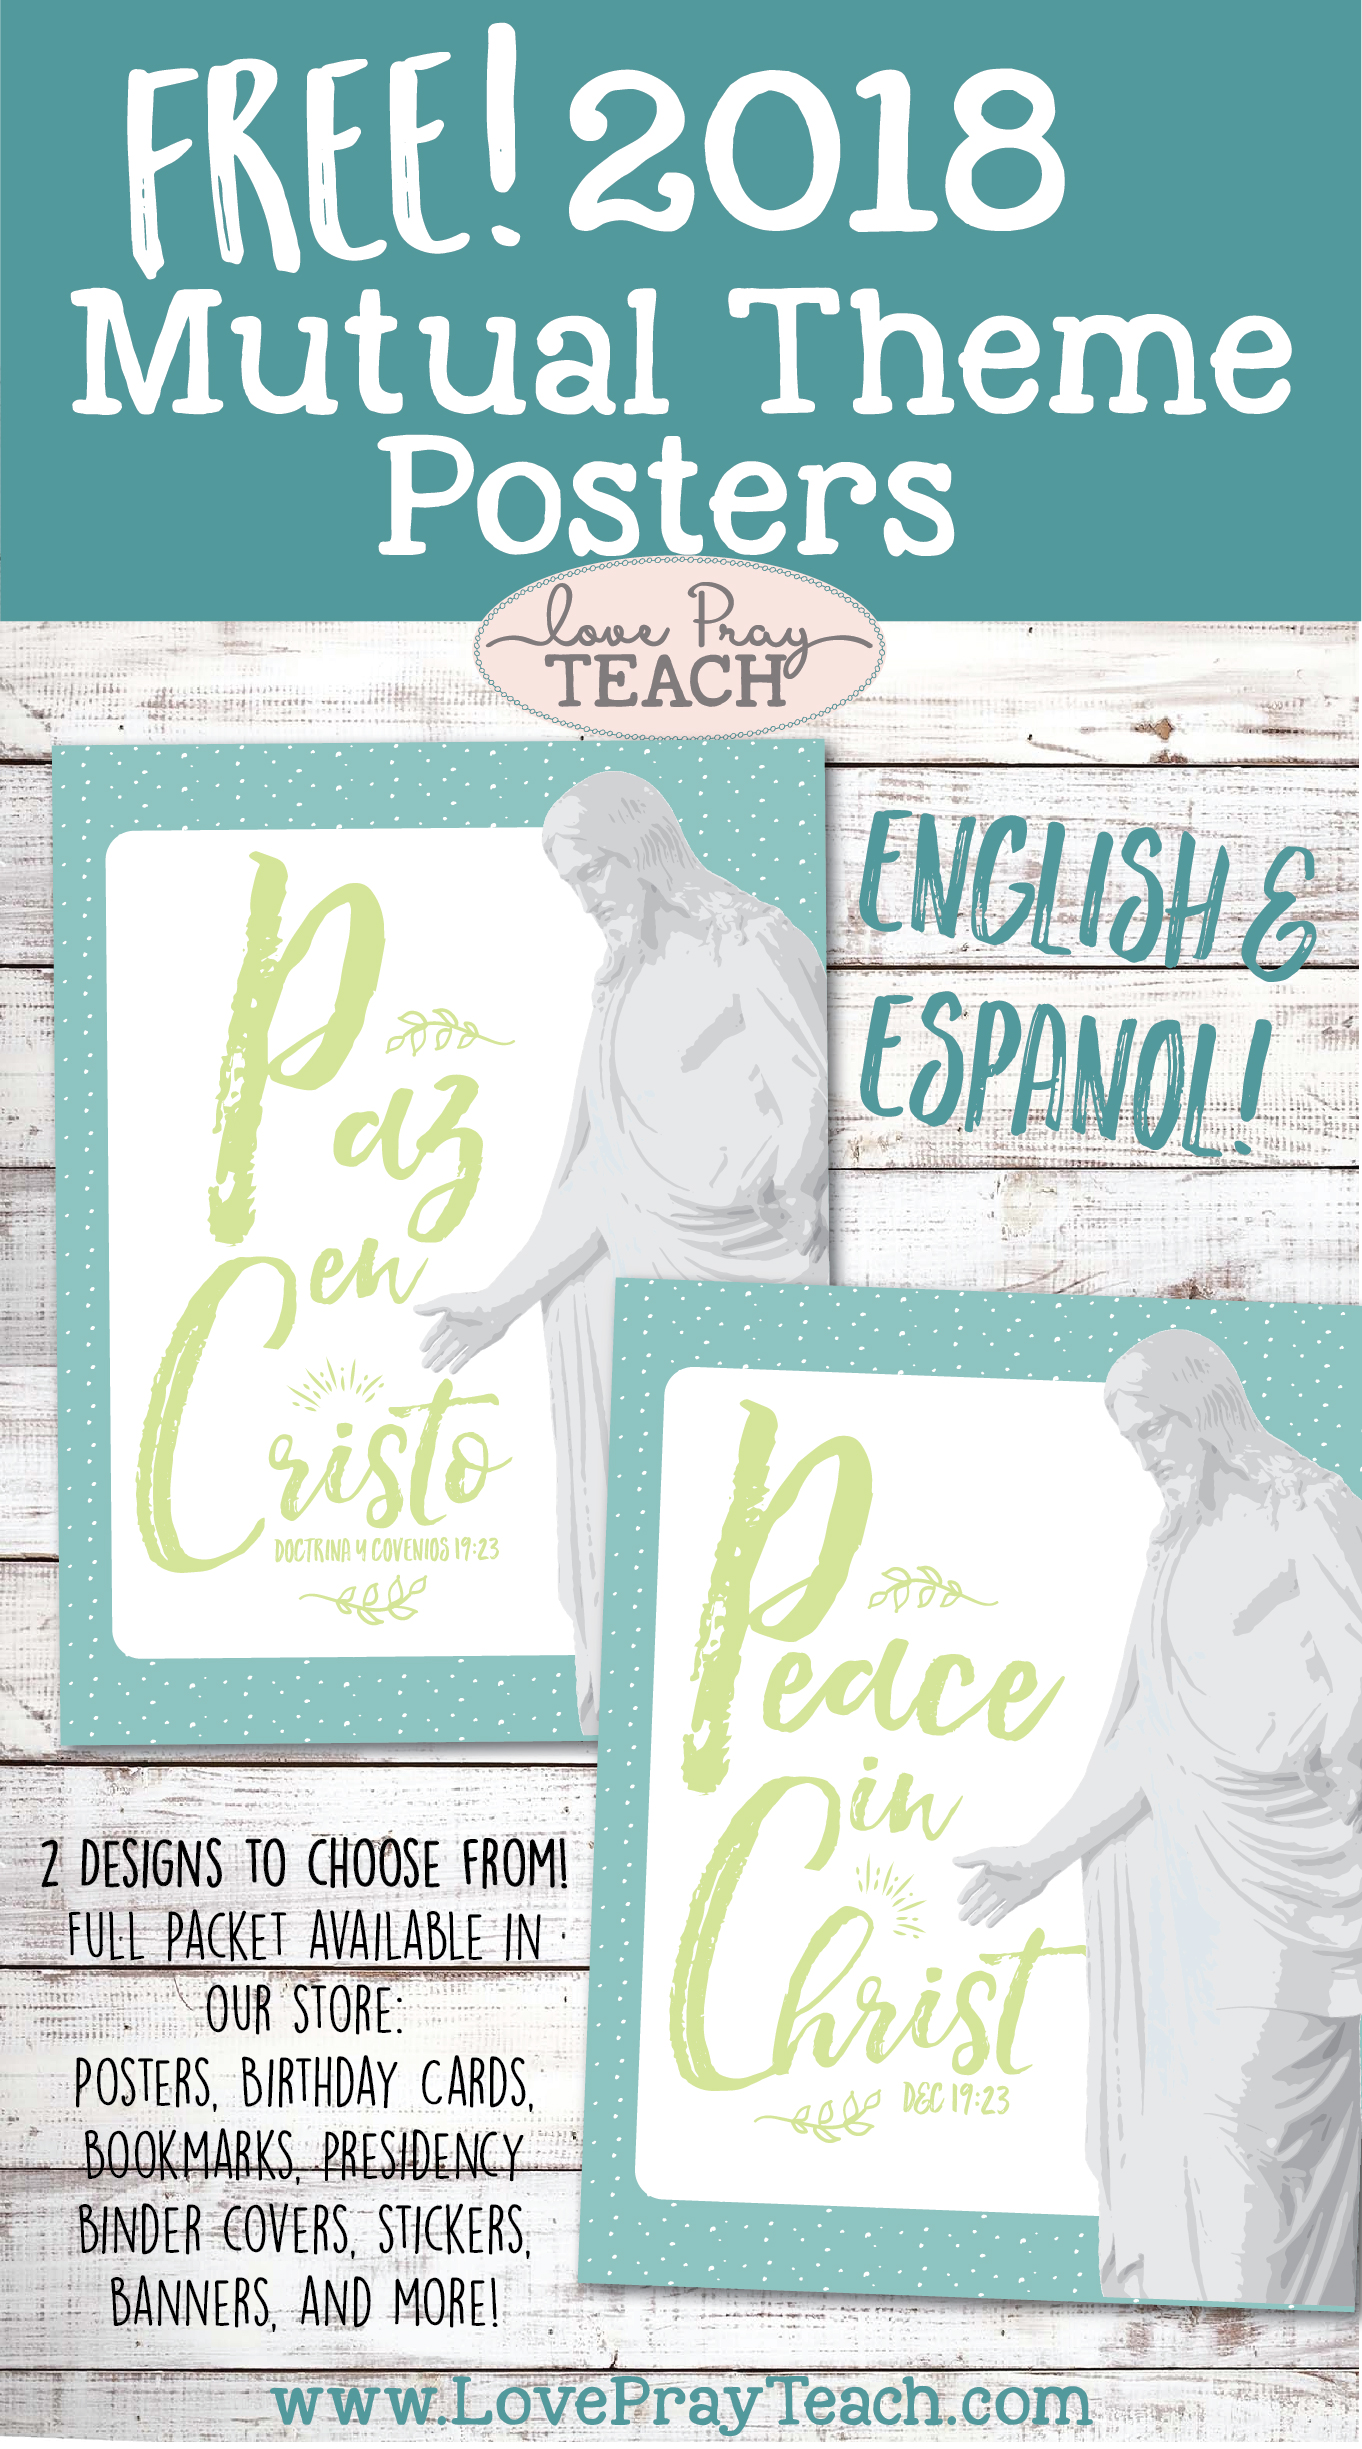 Free 2018 Mutual Theme Printables in English and Espanol